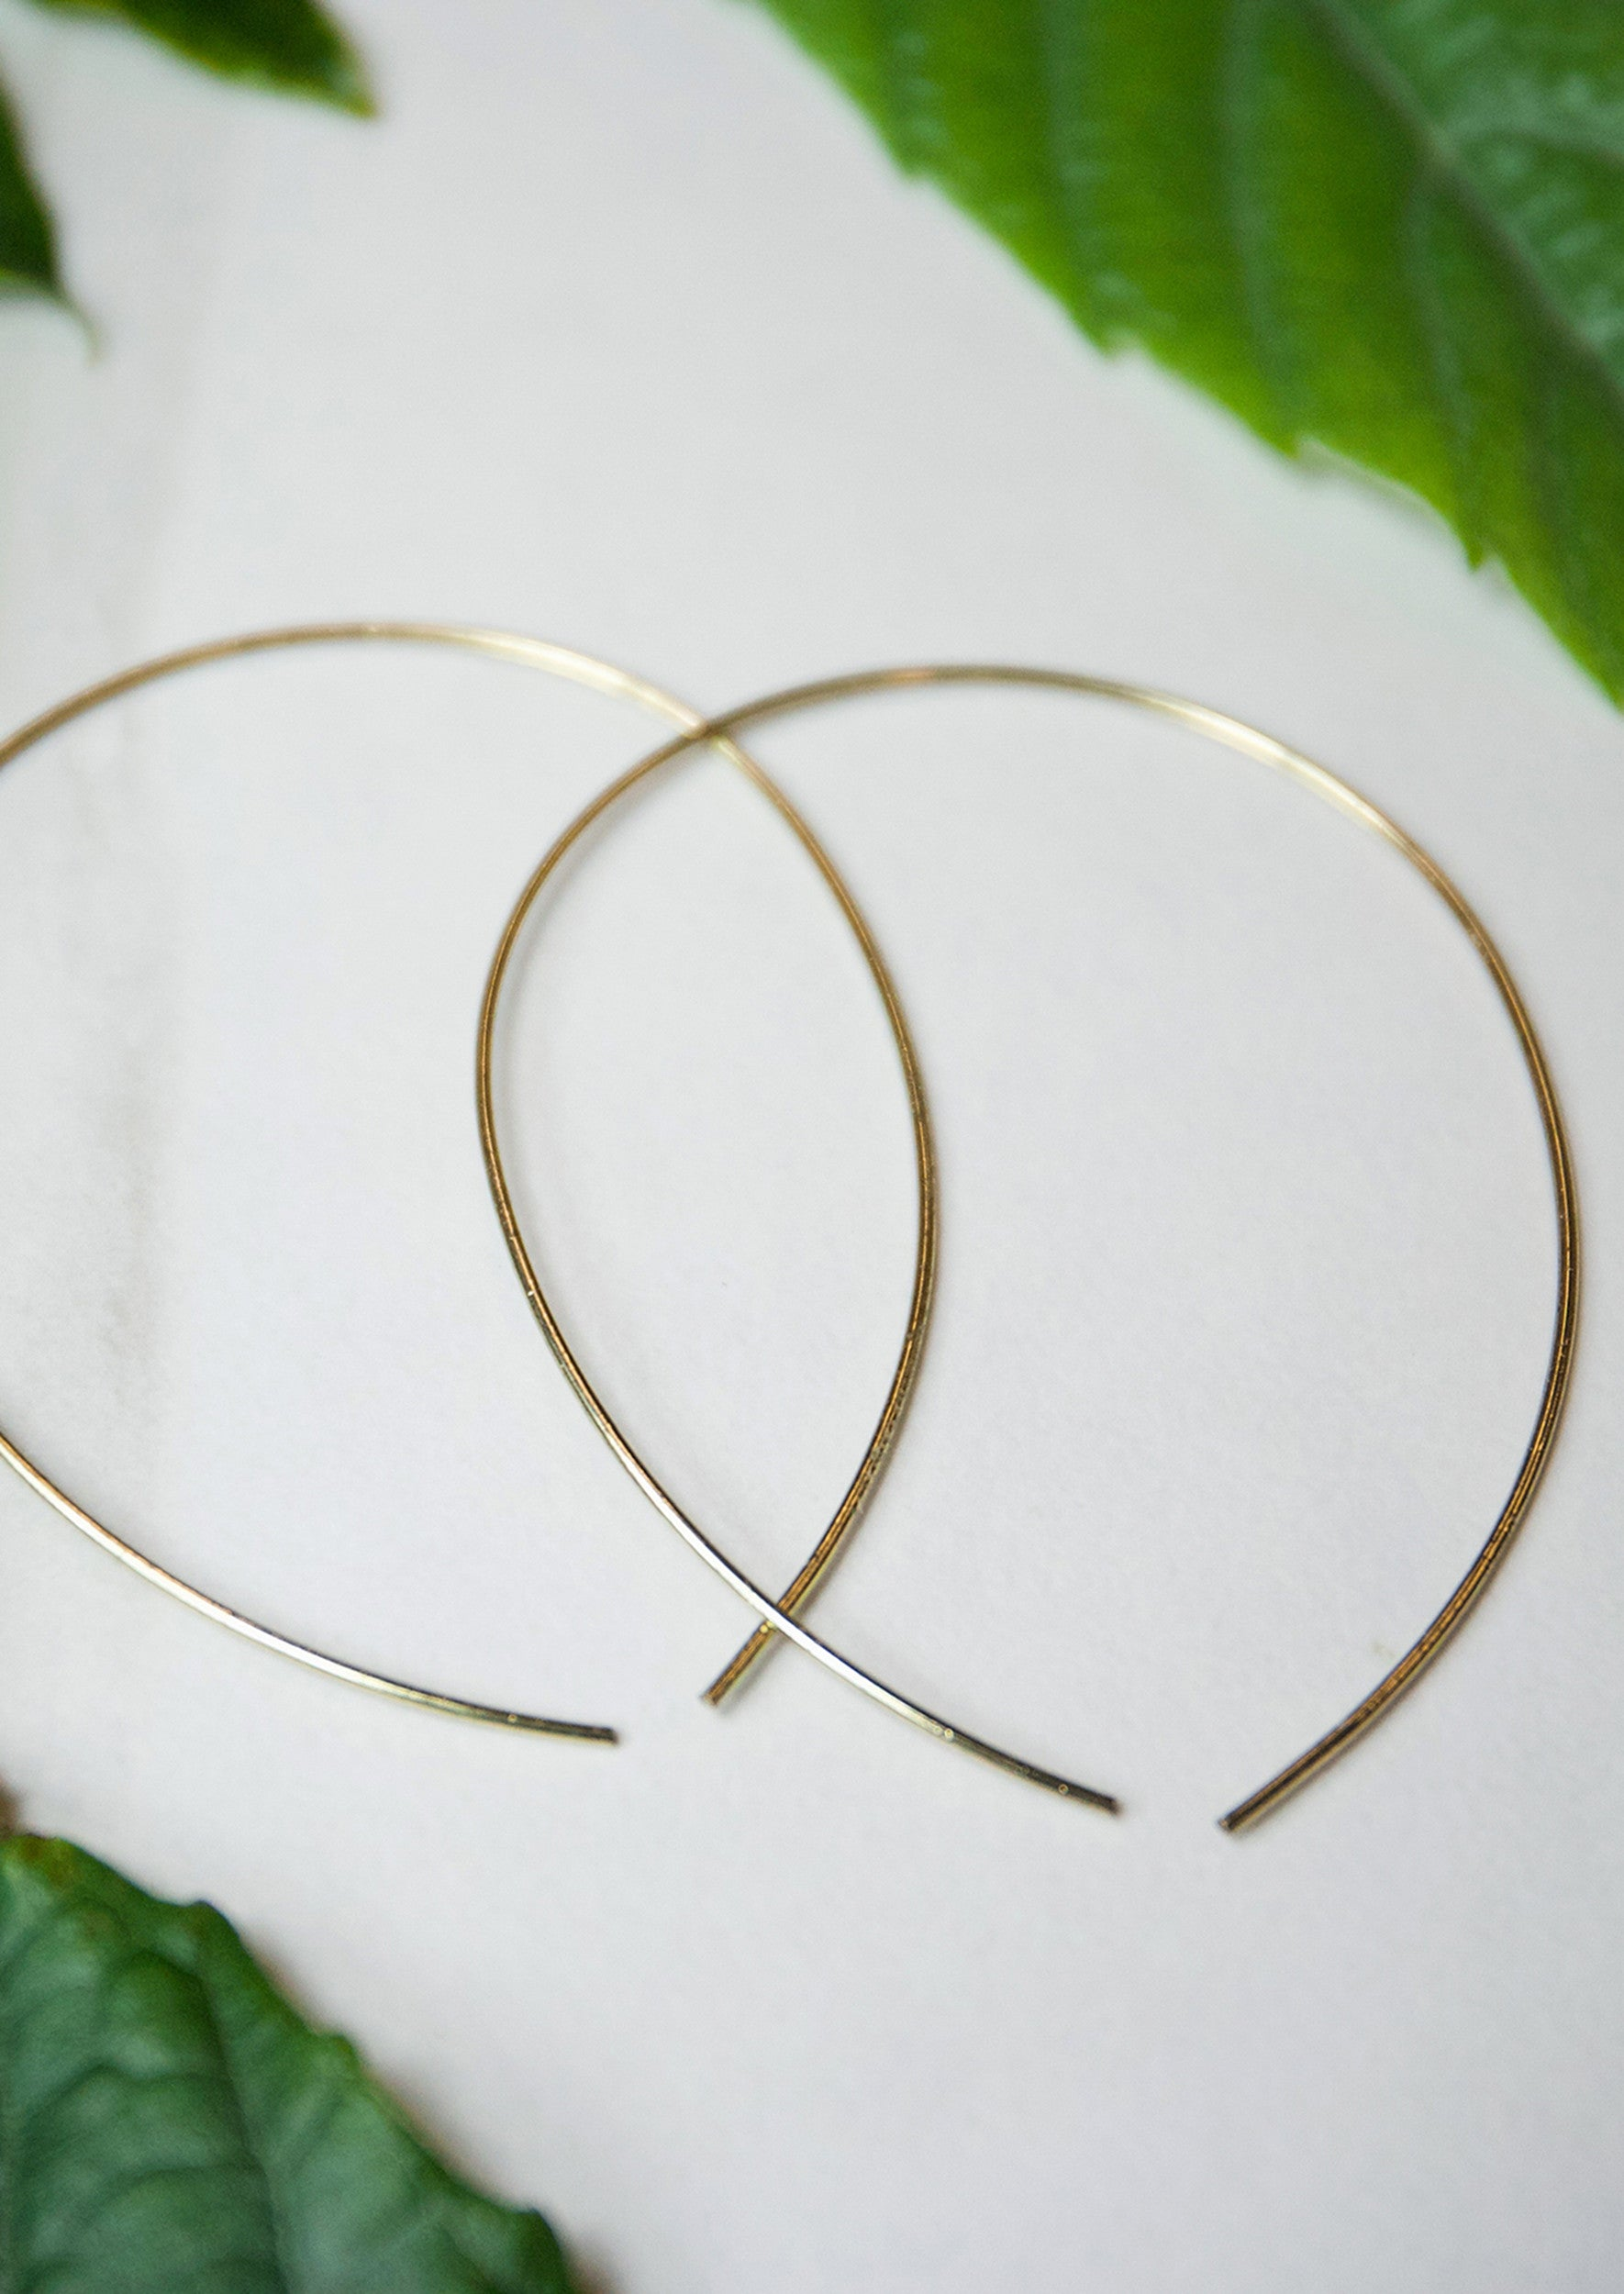 Jules Smith 14k Plated Bohemian Hoop Earrings From Jules Smith